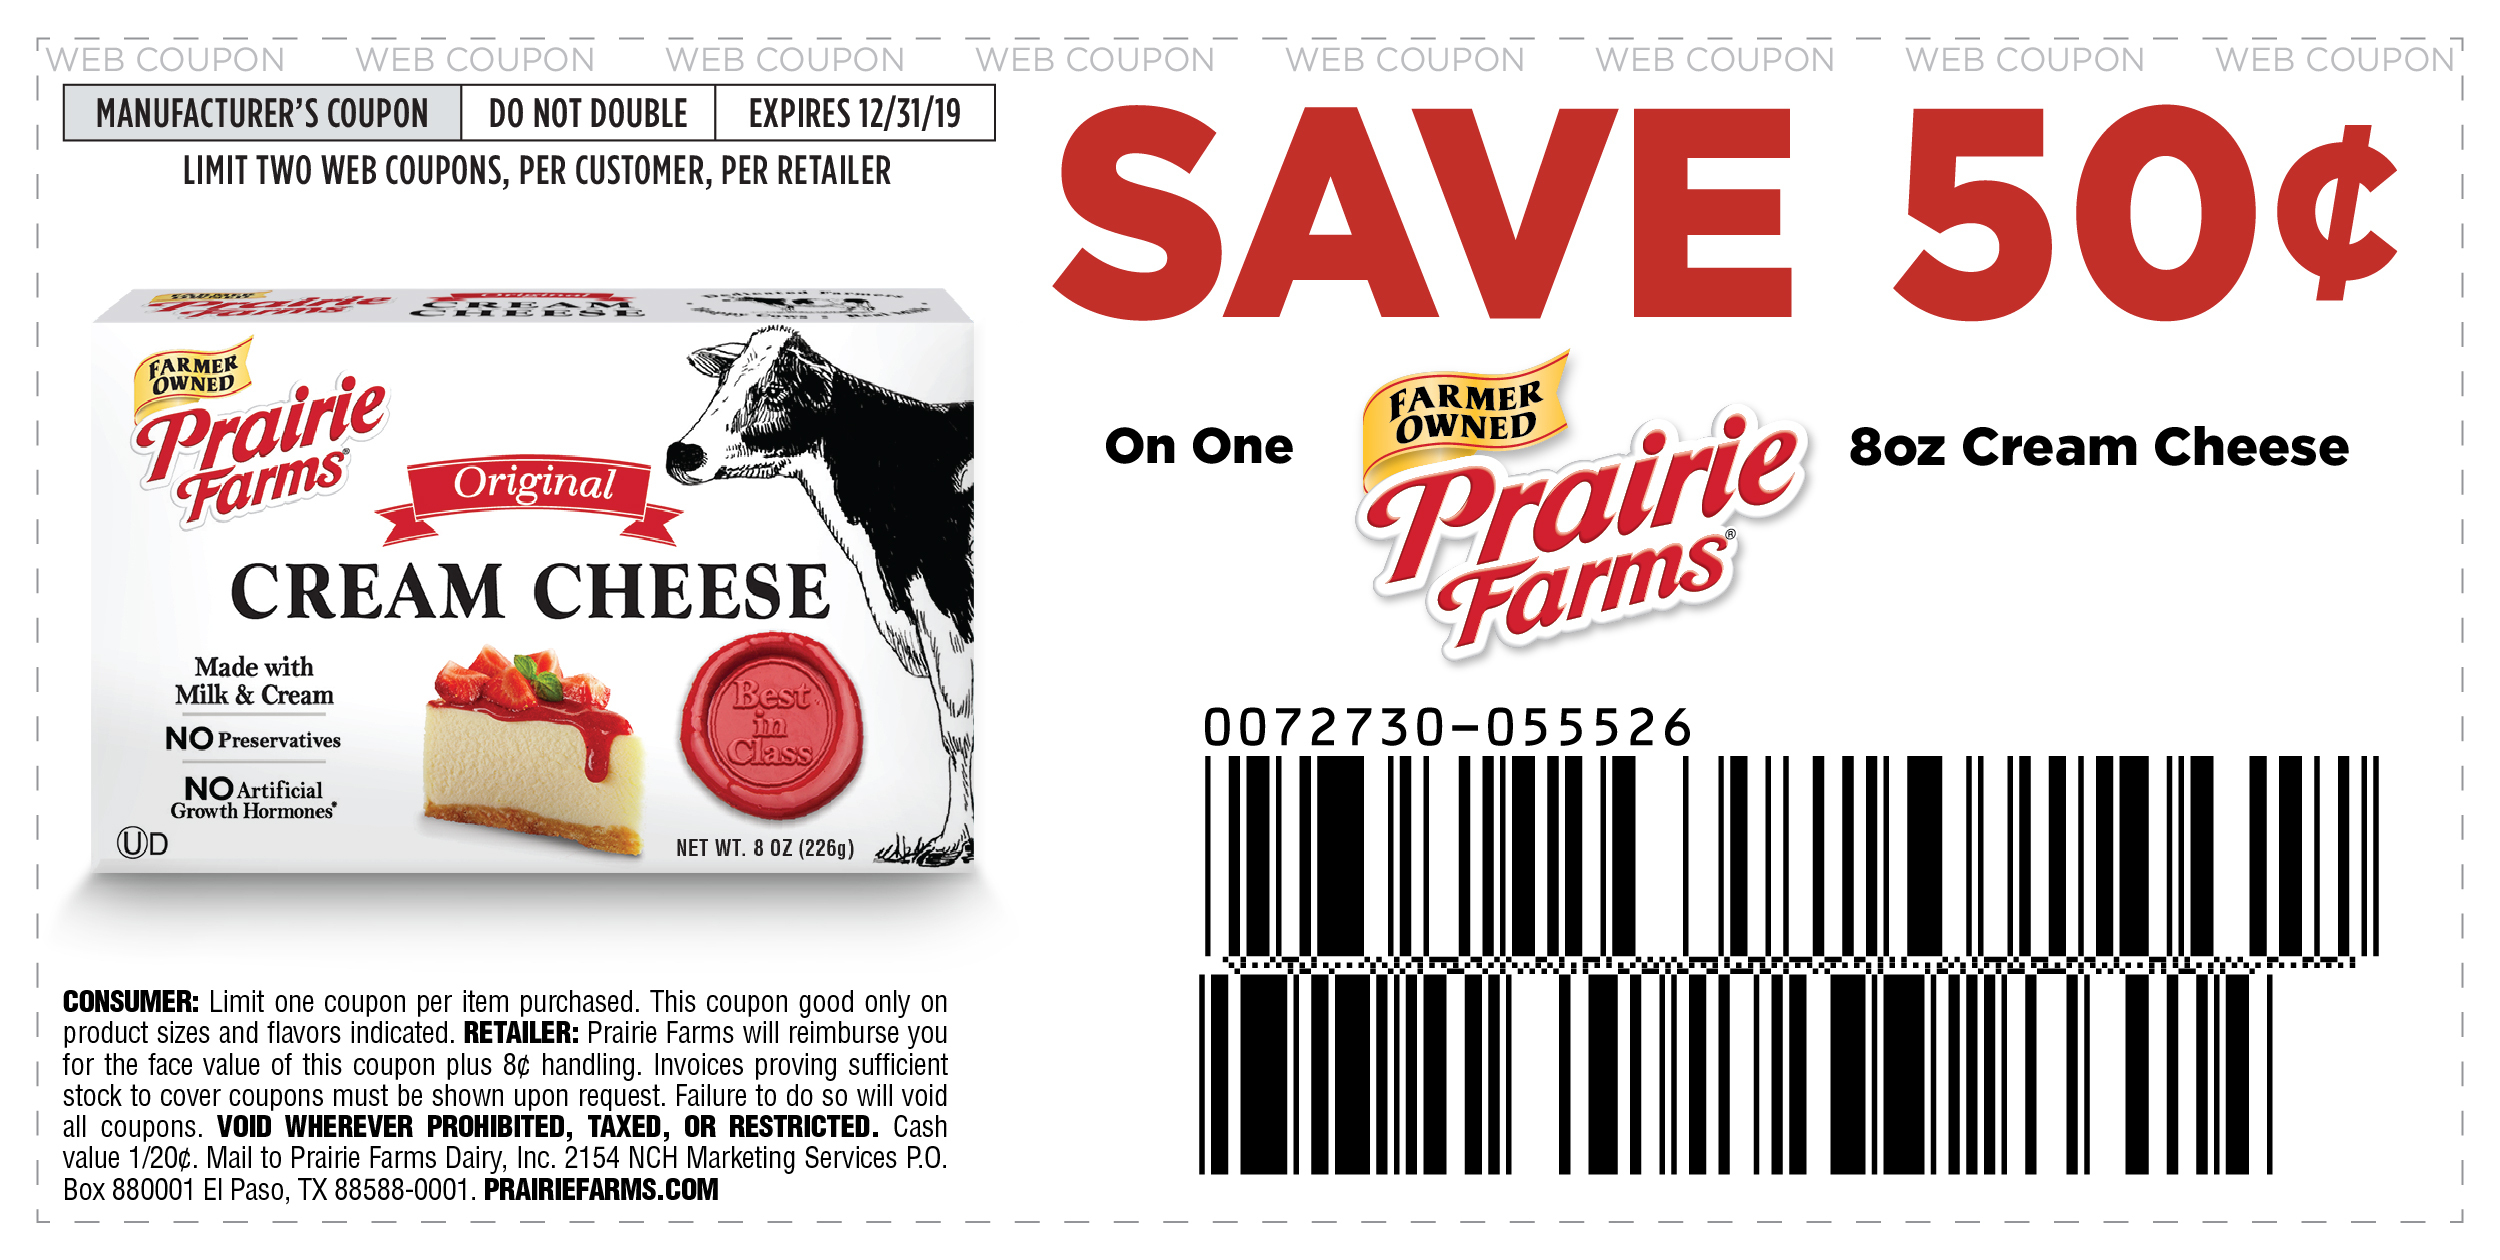 Prairie Farms Coupons, Save Now, Ice Cream, Cottage Cheese - Free Milk Coupons Printable